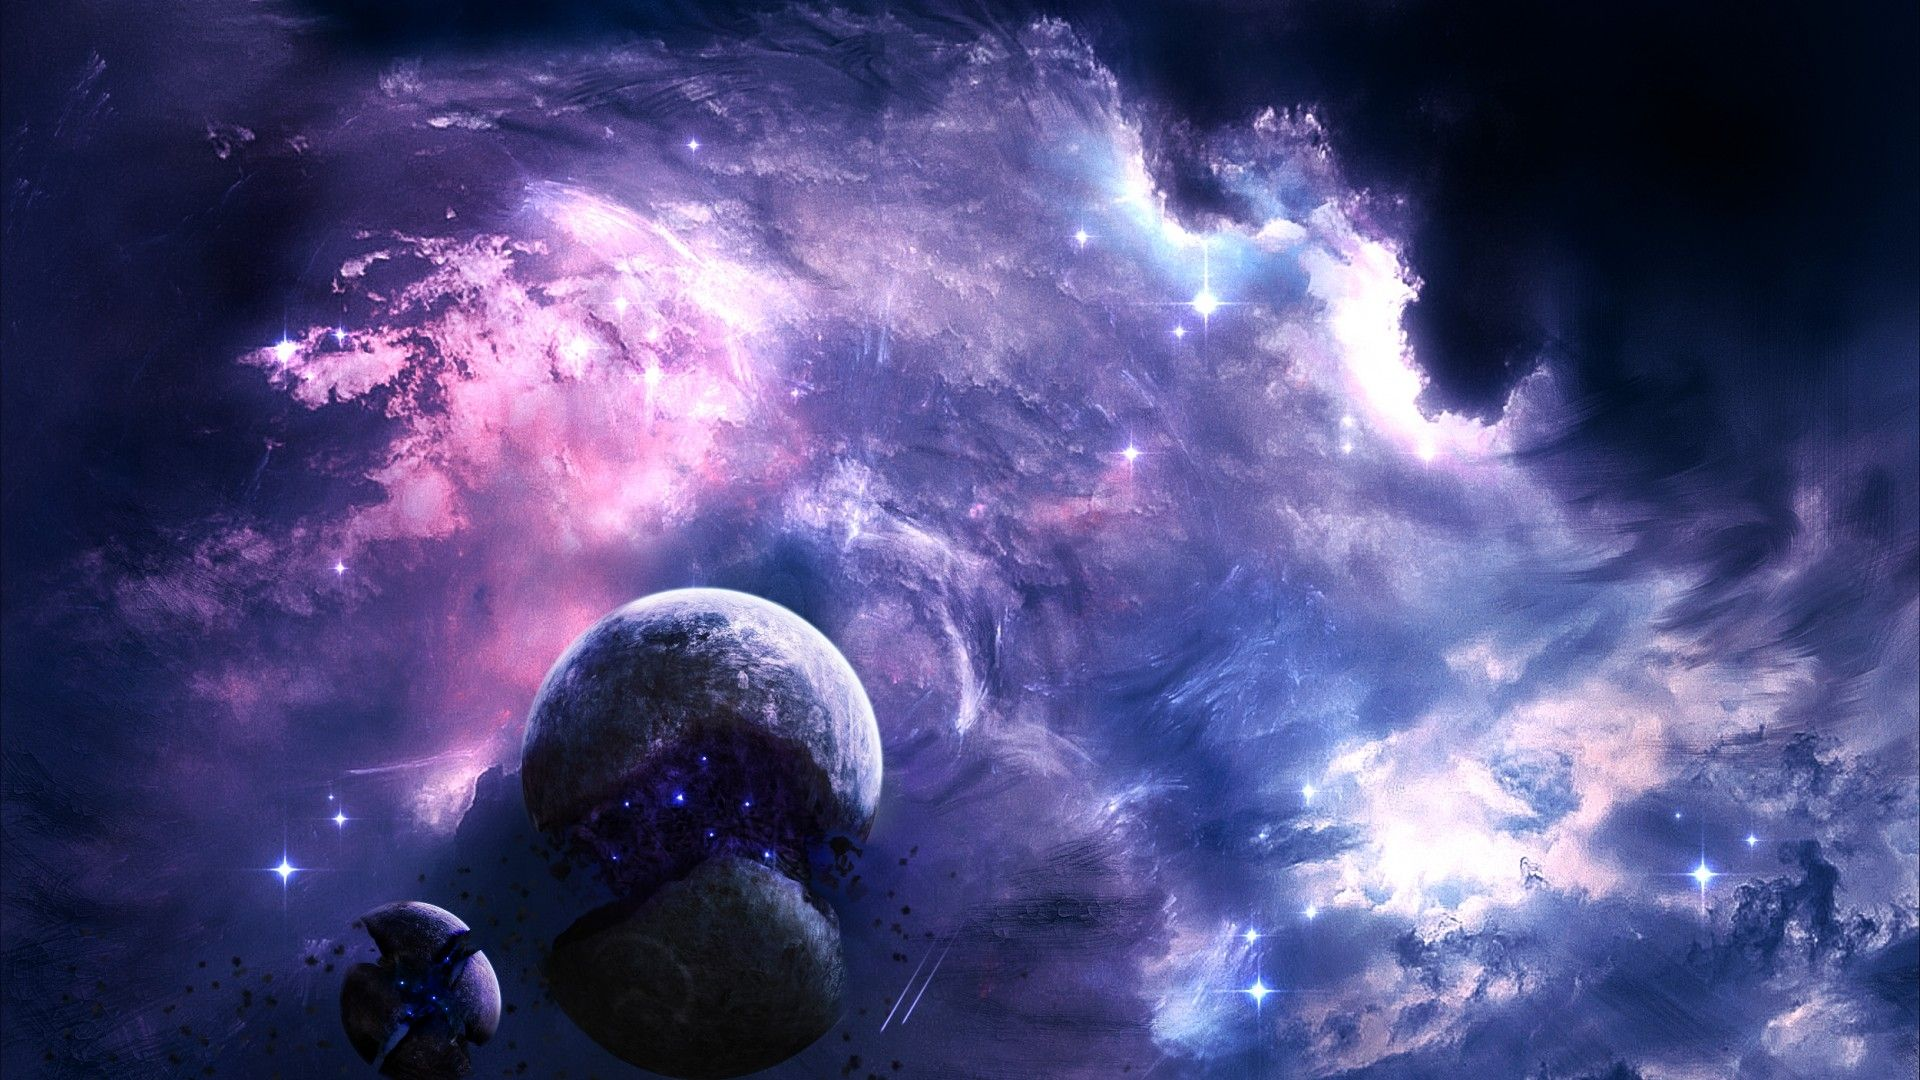 Download desktop backgrounds hd space hd new desktop backgrounds download desktop backgrounds hd space hd new desktop backgrounds hd space download download desktop backgrounds voltagebd